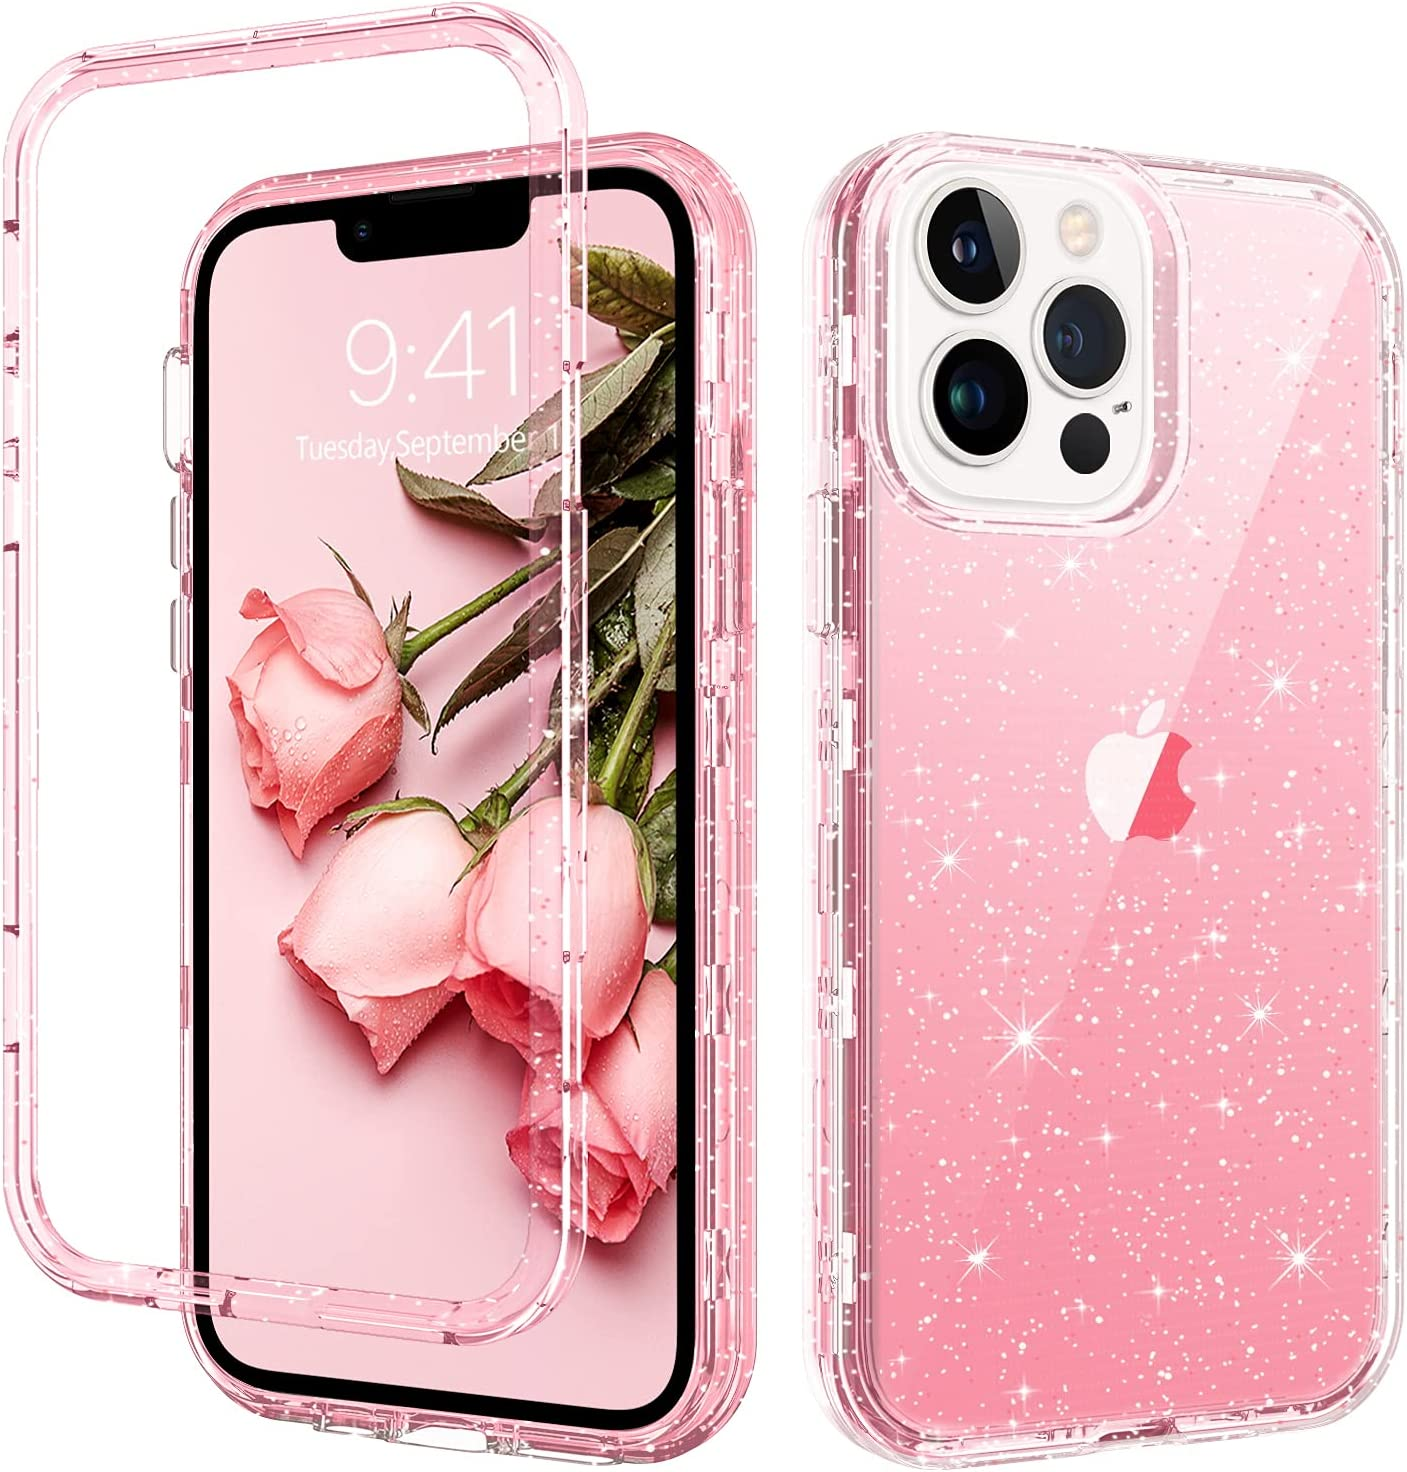 GUAGUA Compatible with iPhone 13 Pro Max Case Pink Glitter Bling Crystal Clear Cover for Girls Women Three Layer Hybrid Hard PC Soft TPU Bumper Shockproof Protective Phone Case for iPhone 13 Pro Max